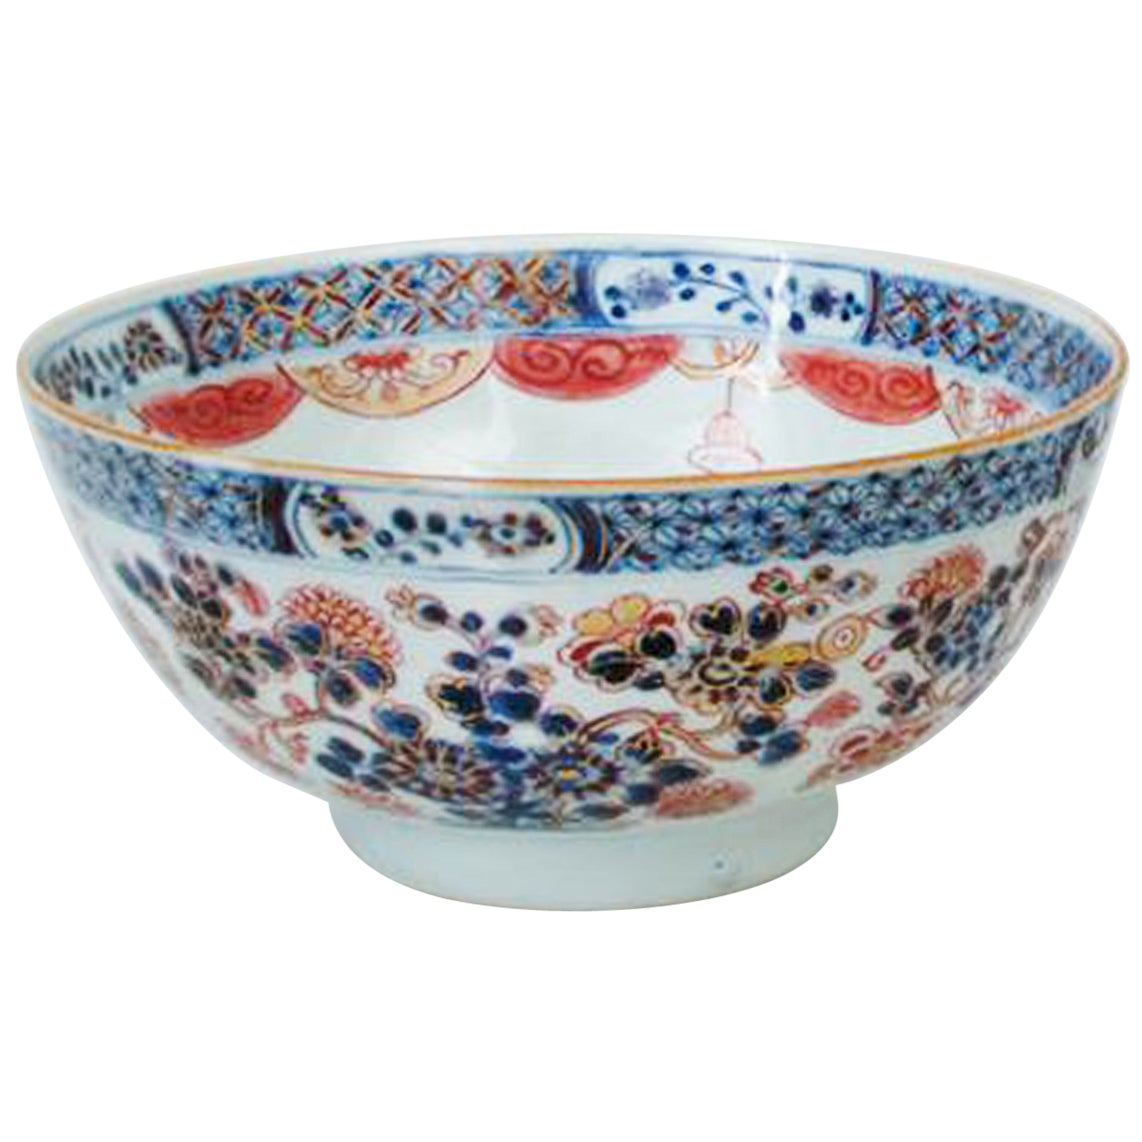 Dutch Decorated Chinese Export Imari Porcelain Bowl, circa 1770